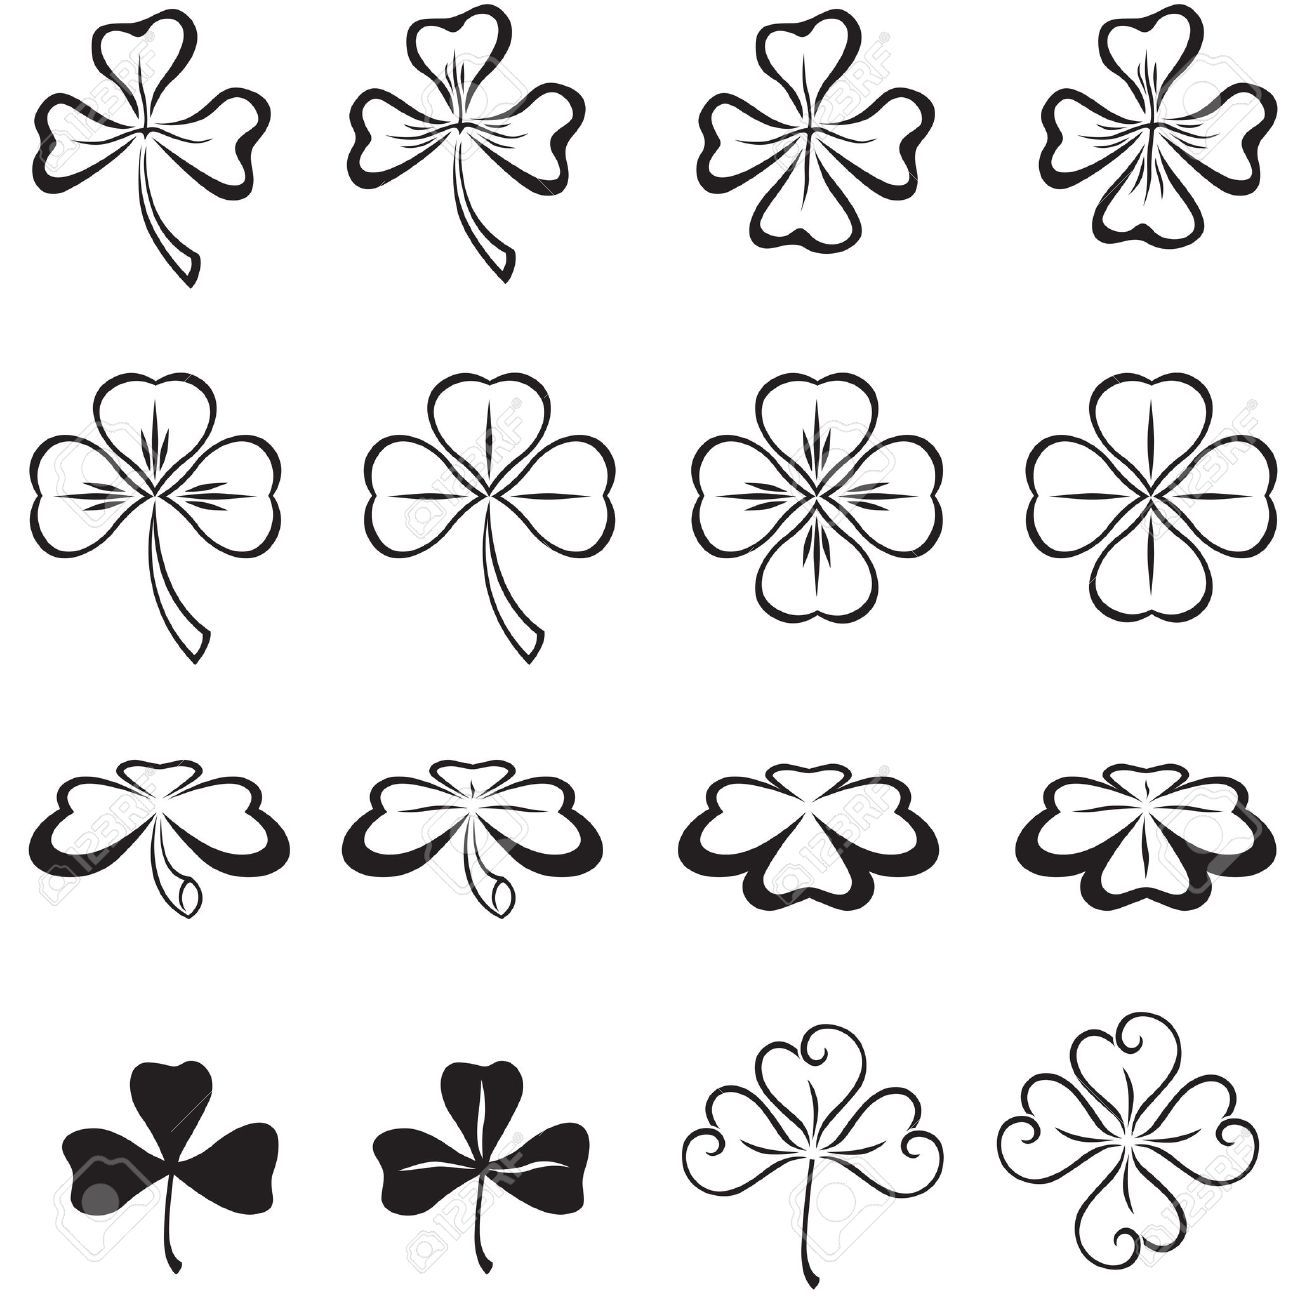 The Leaves Of Clover In Three And Four Leaf Royalty Free